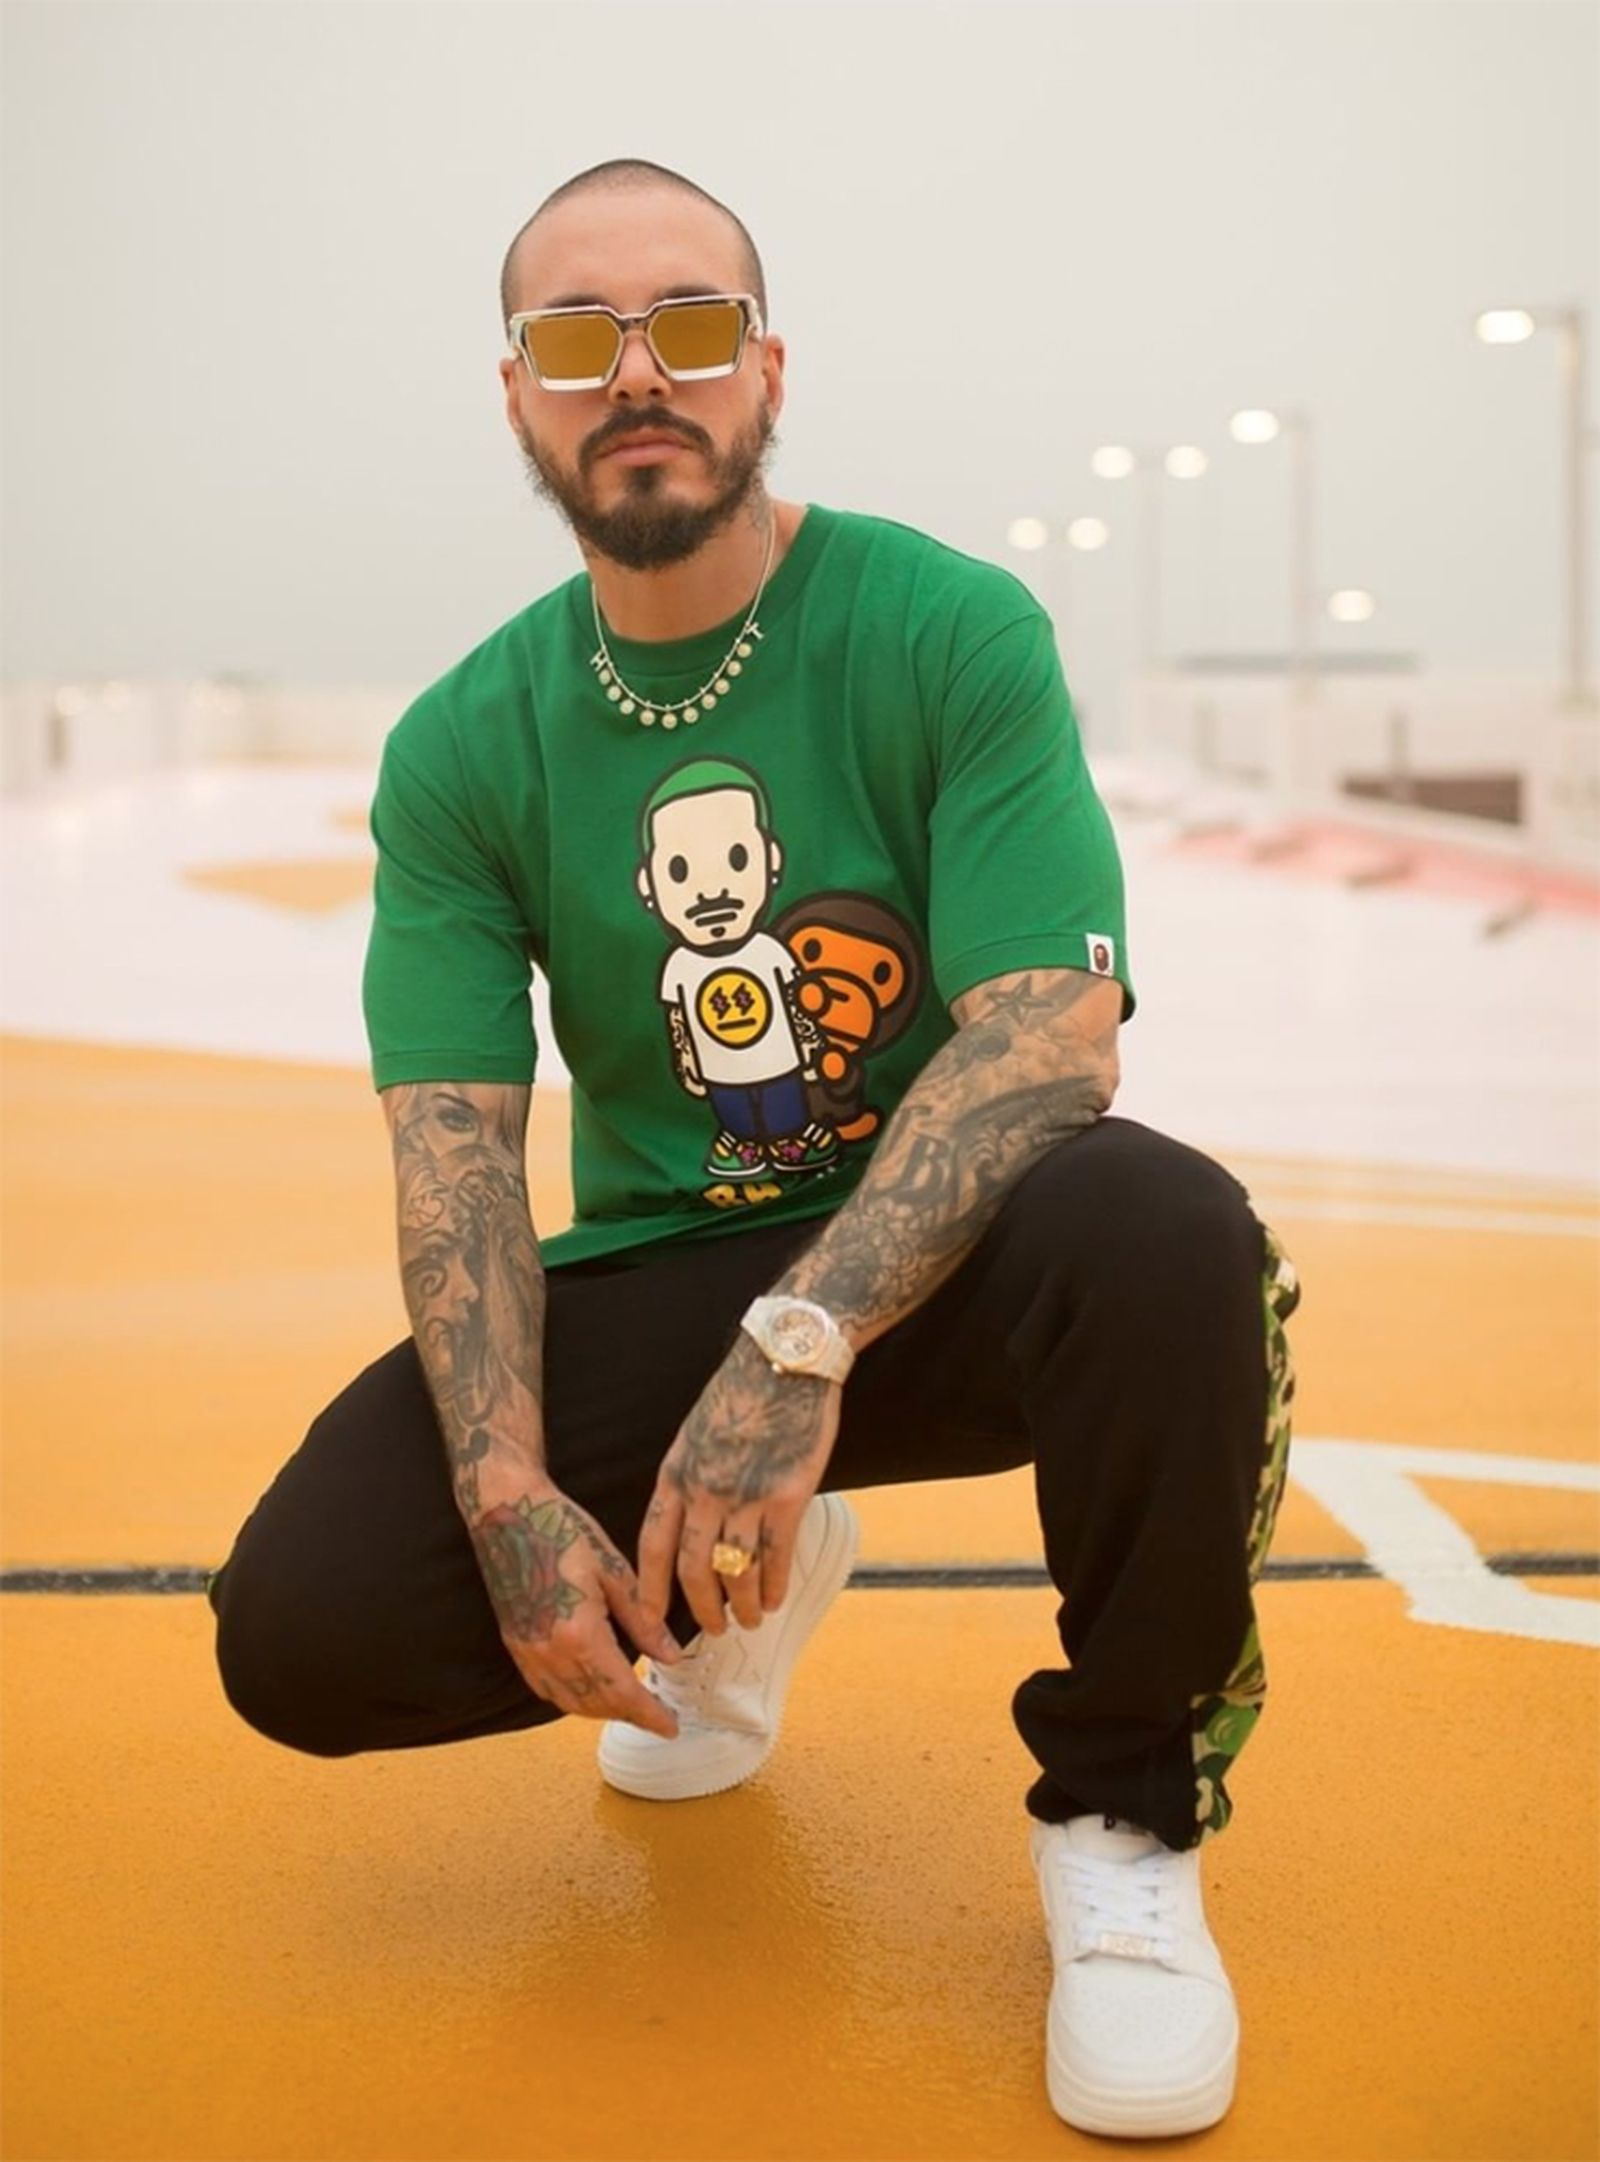 BAPE J Balvin collection